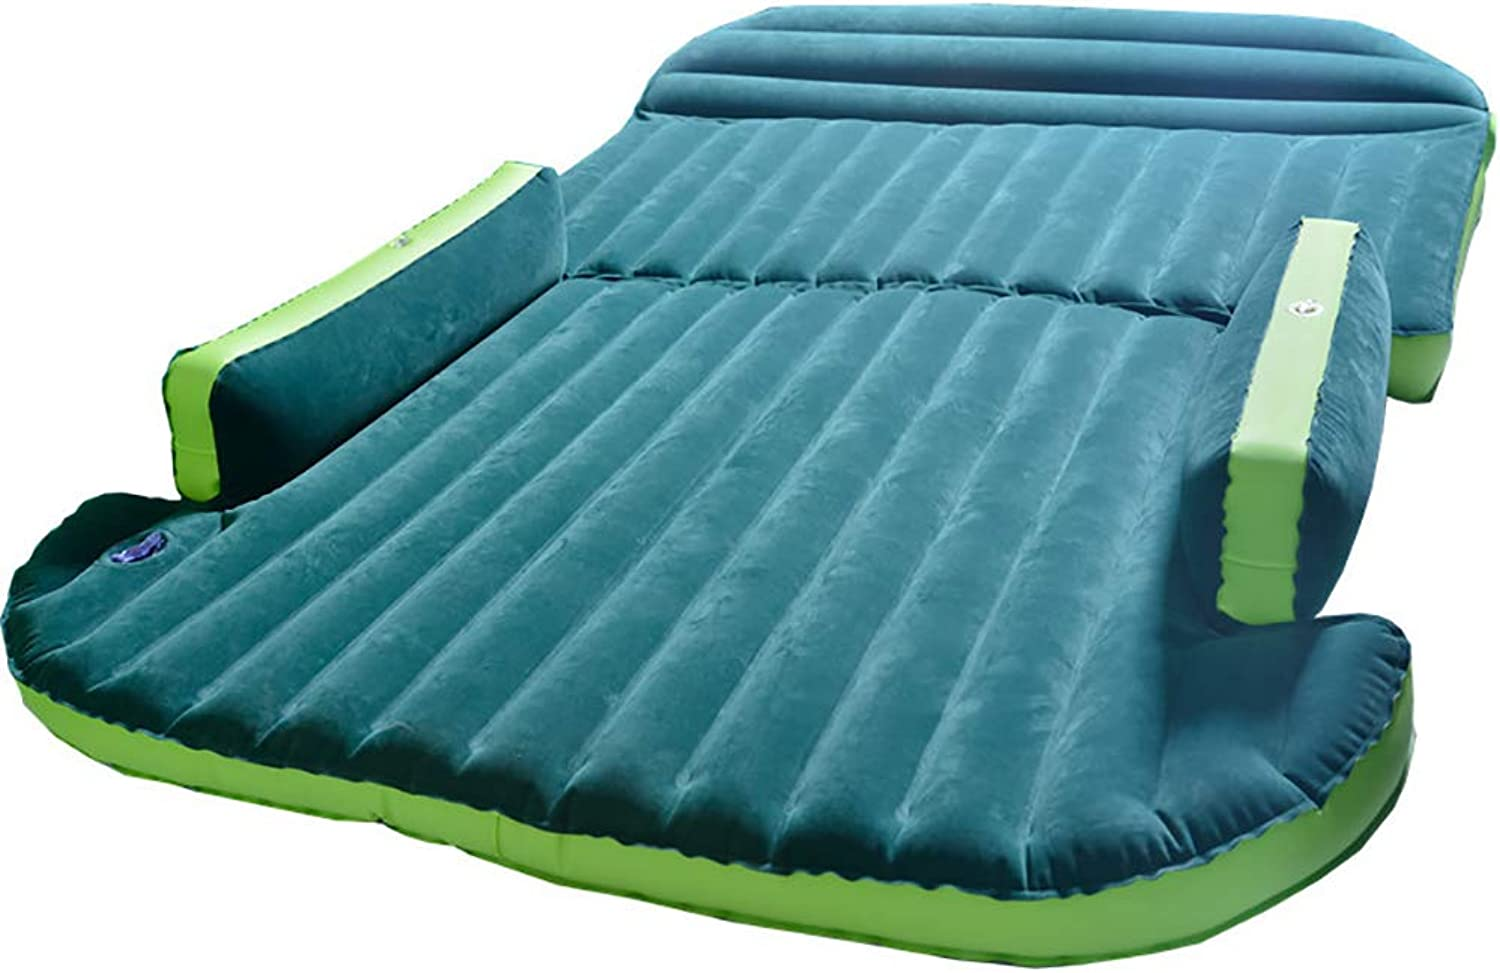 QKa SUV Dedicated Inflatable Inflatable Inflatable Cushion Air Bed Extended Travel Matress Air Bed Inflatable Thicker Back Seat Grün B07PVYDP3B  Wunderbar 2a59fd